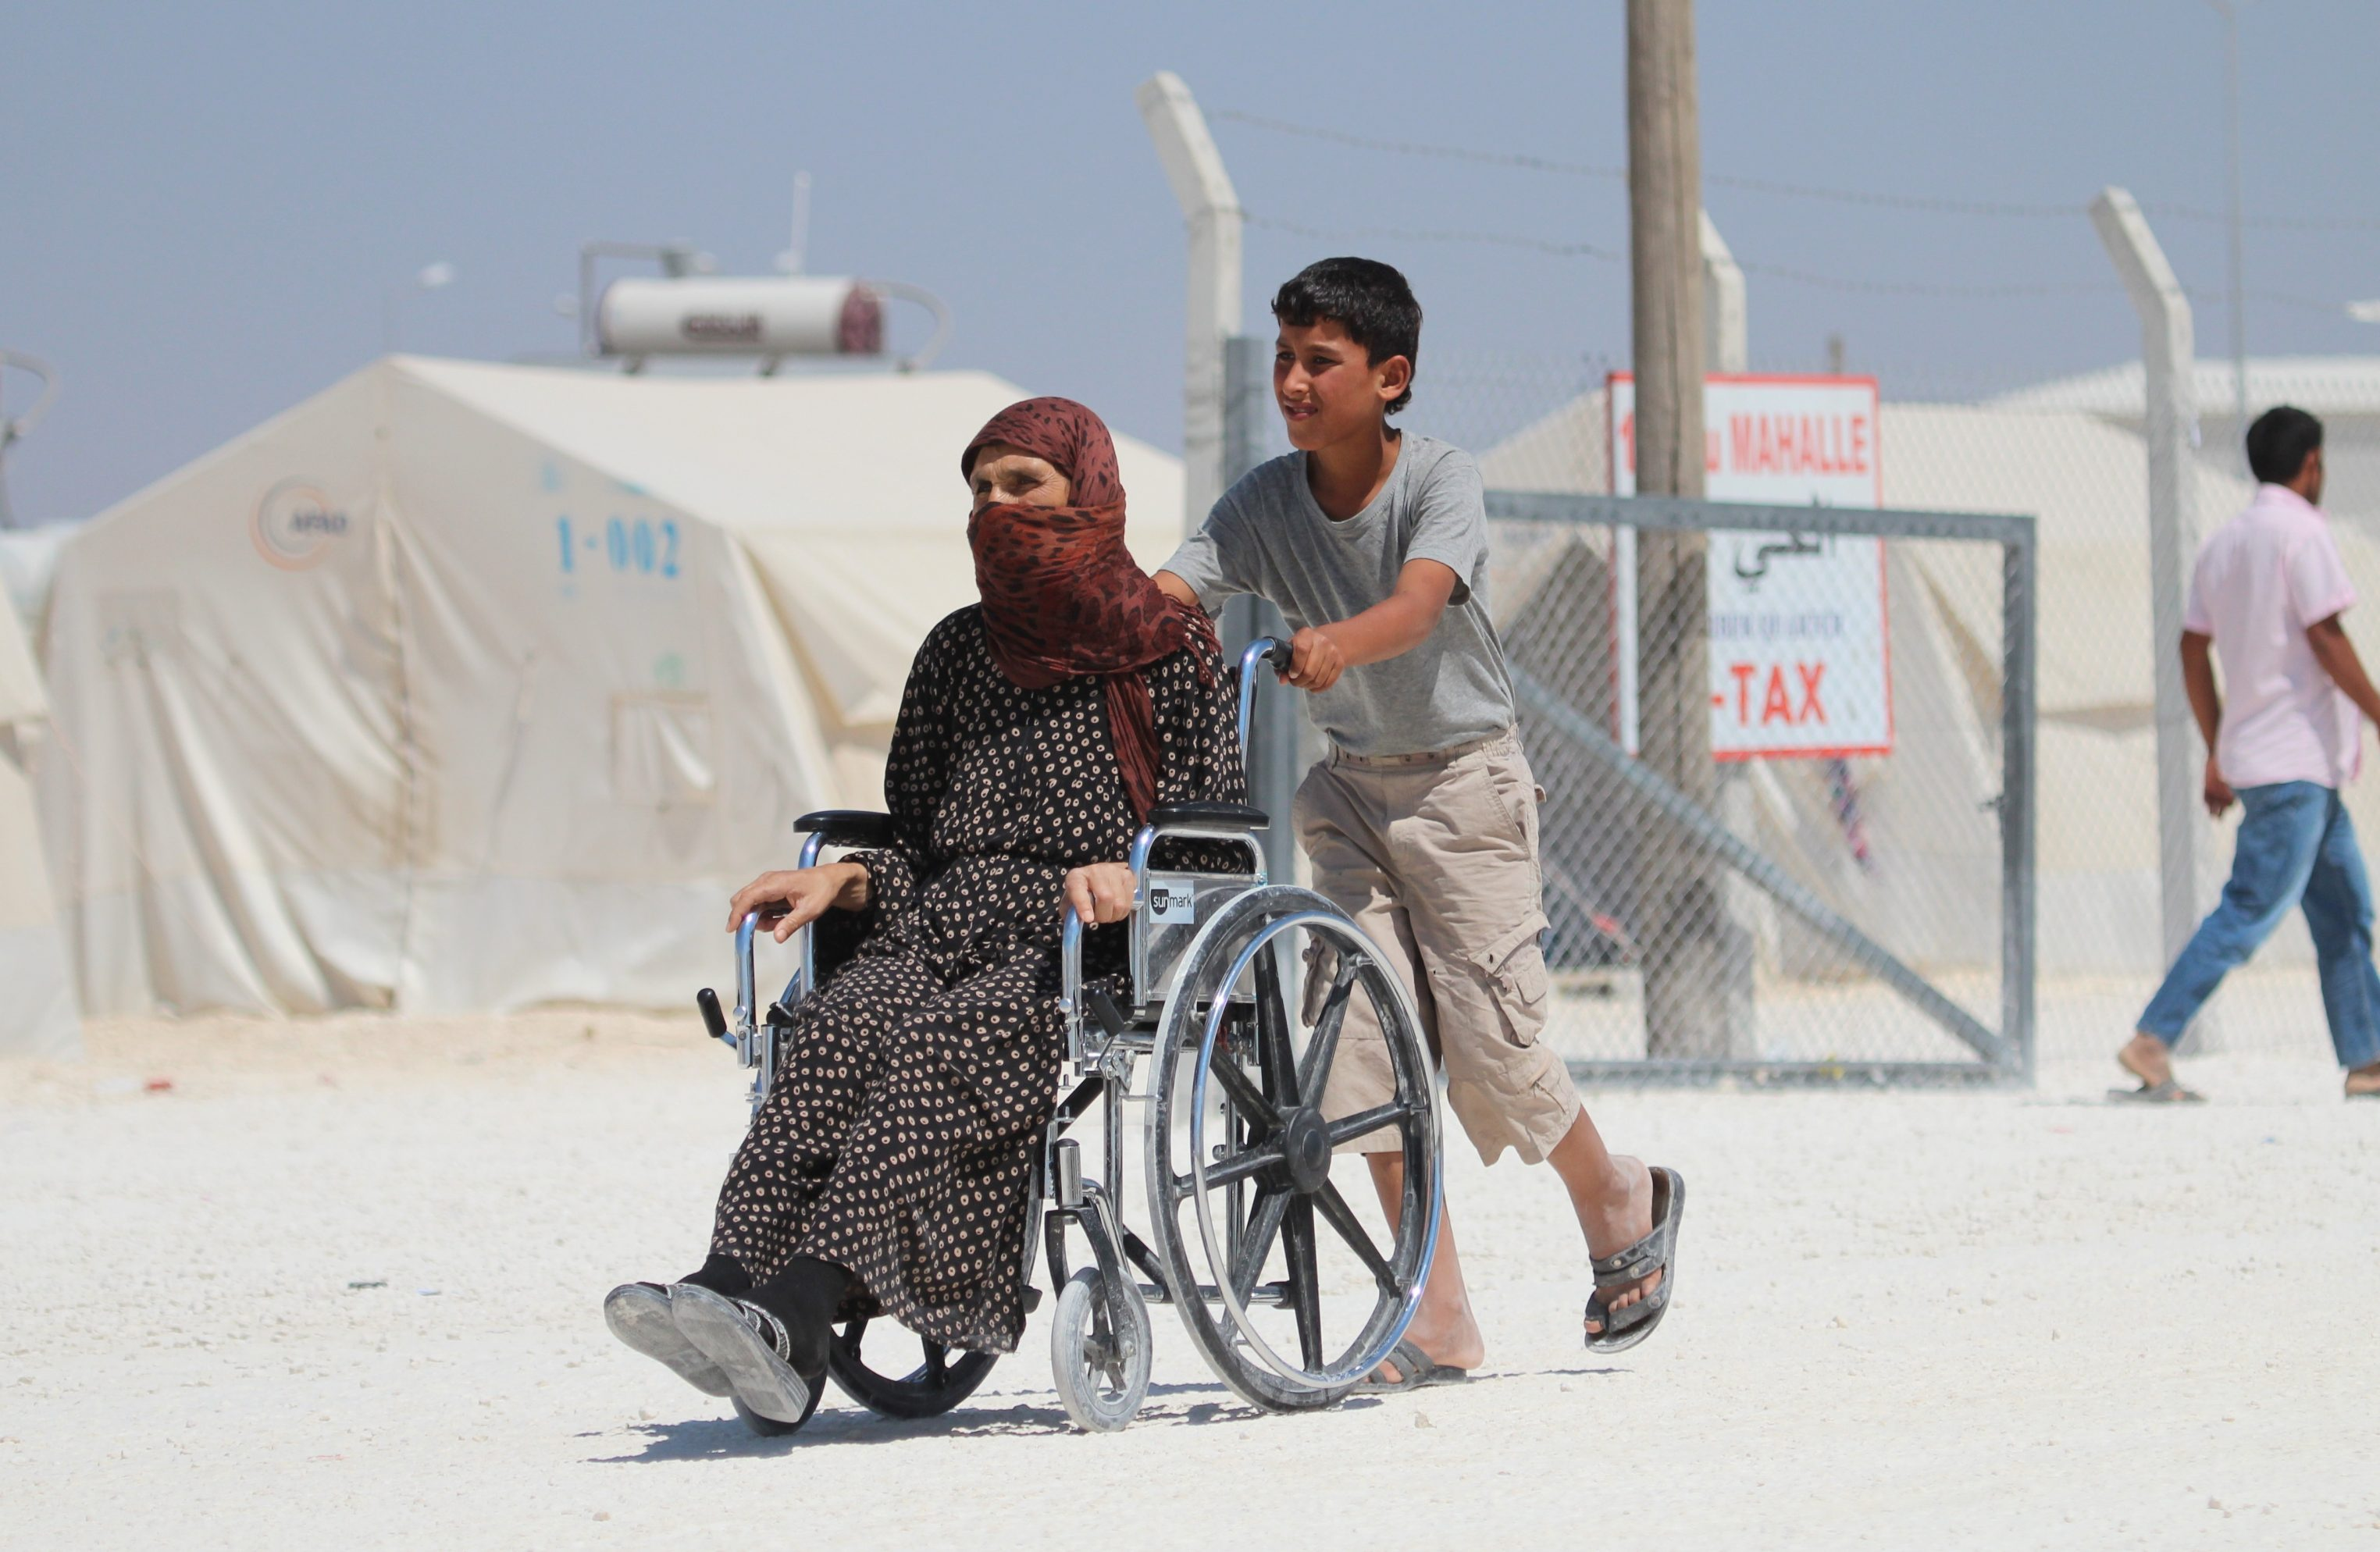 SANLIURFA, TURKEY - JULY 14: A Syrian Boy Helps A Disabled Elderly Woman As He Pushes Her Wheelchair Along A Road At A Refugee Camp In Suruc District Of Sanliurfa On July 14, 2015, As The Syrian Kurds Who Fled The Clashes Between Daesh And Kurdish Armed Groups About A Year Ego, Make Preparations For The Eid Al-Fitr Marks The End Of The Muslim Holy Fasting Month Of Ramadan By Preparing Sweets Despite The All Harsh Conditions At The Camp Away From Their Home. (Photo By Halil Fidan/Anadolu Agency/Getty Images)